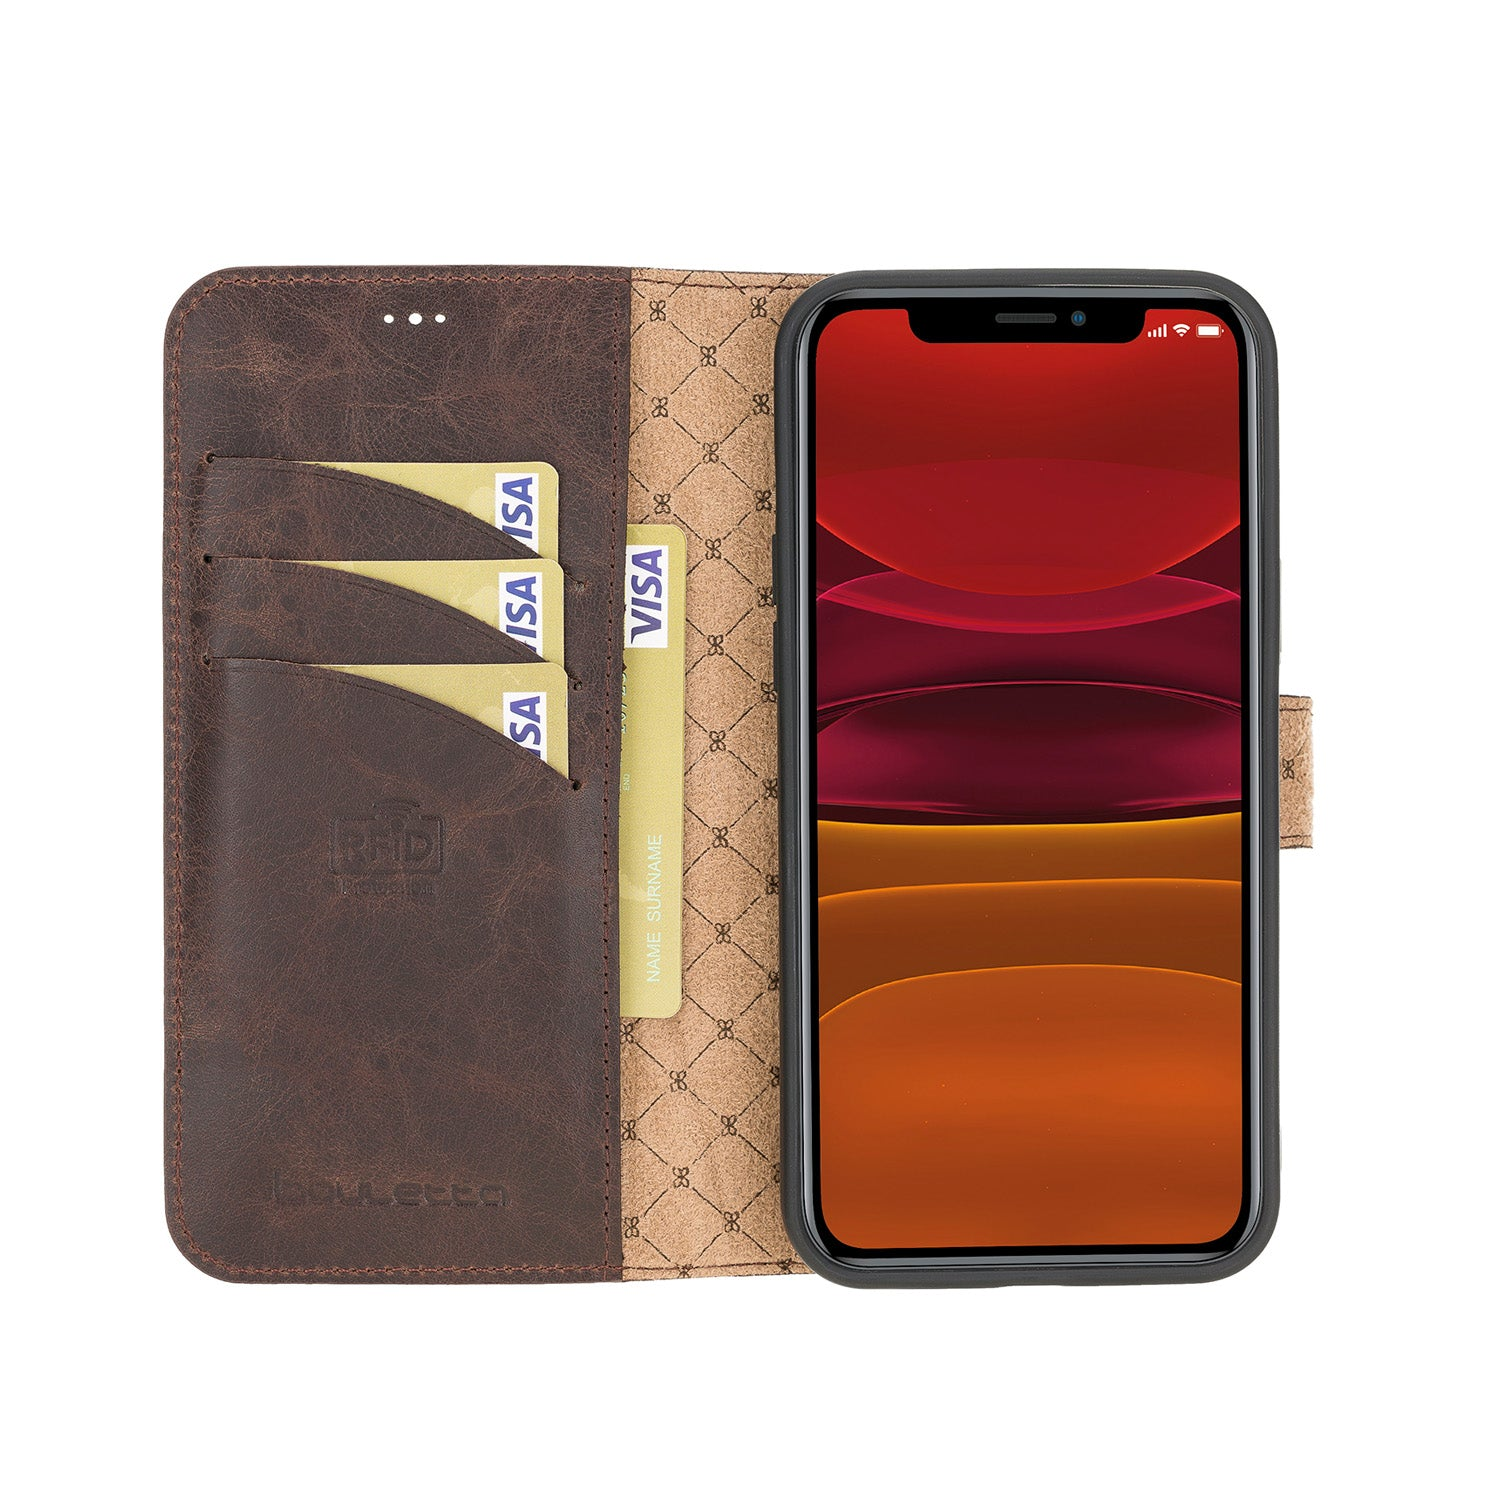 "Wallet Folio Leather Case with RFID for iPhone 12 Mini (5.4"") - BROWN - saracleather"